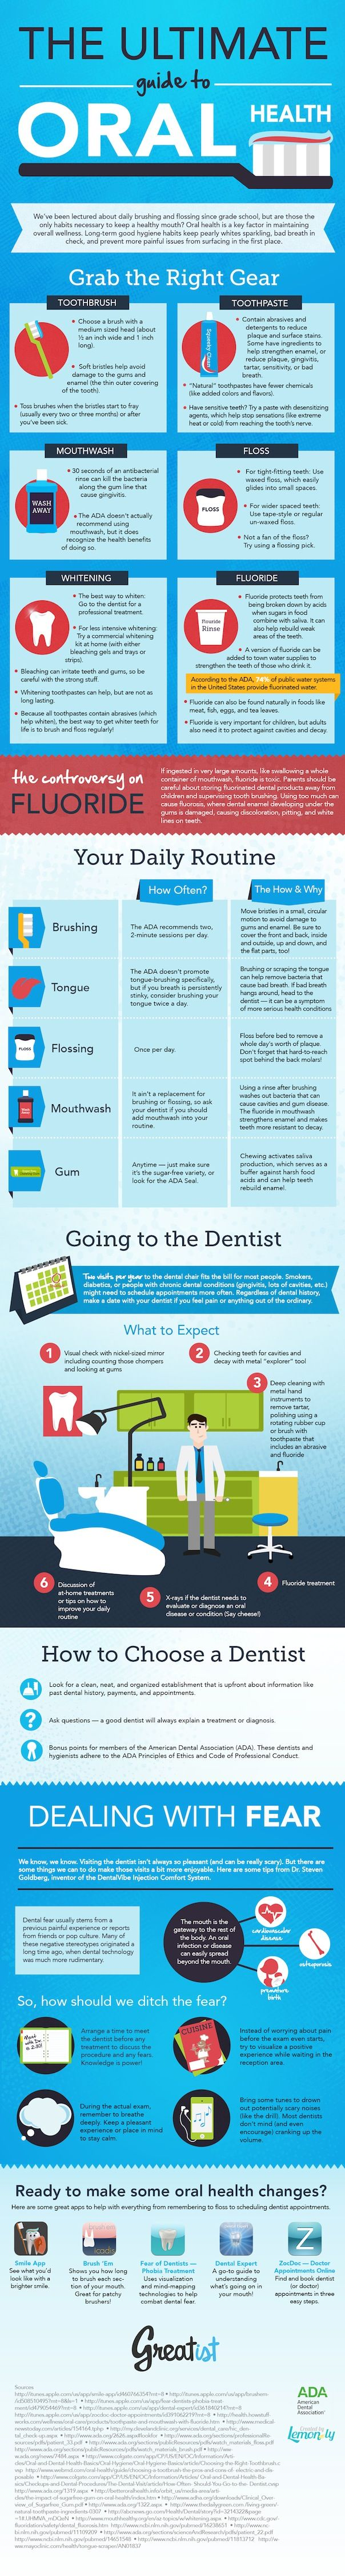 The Ultimate Guide to Oral Health #oral #health #tips